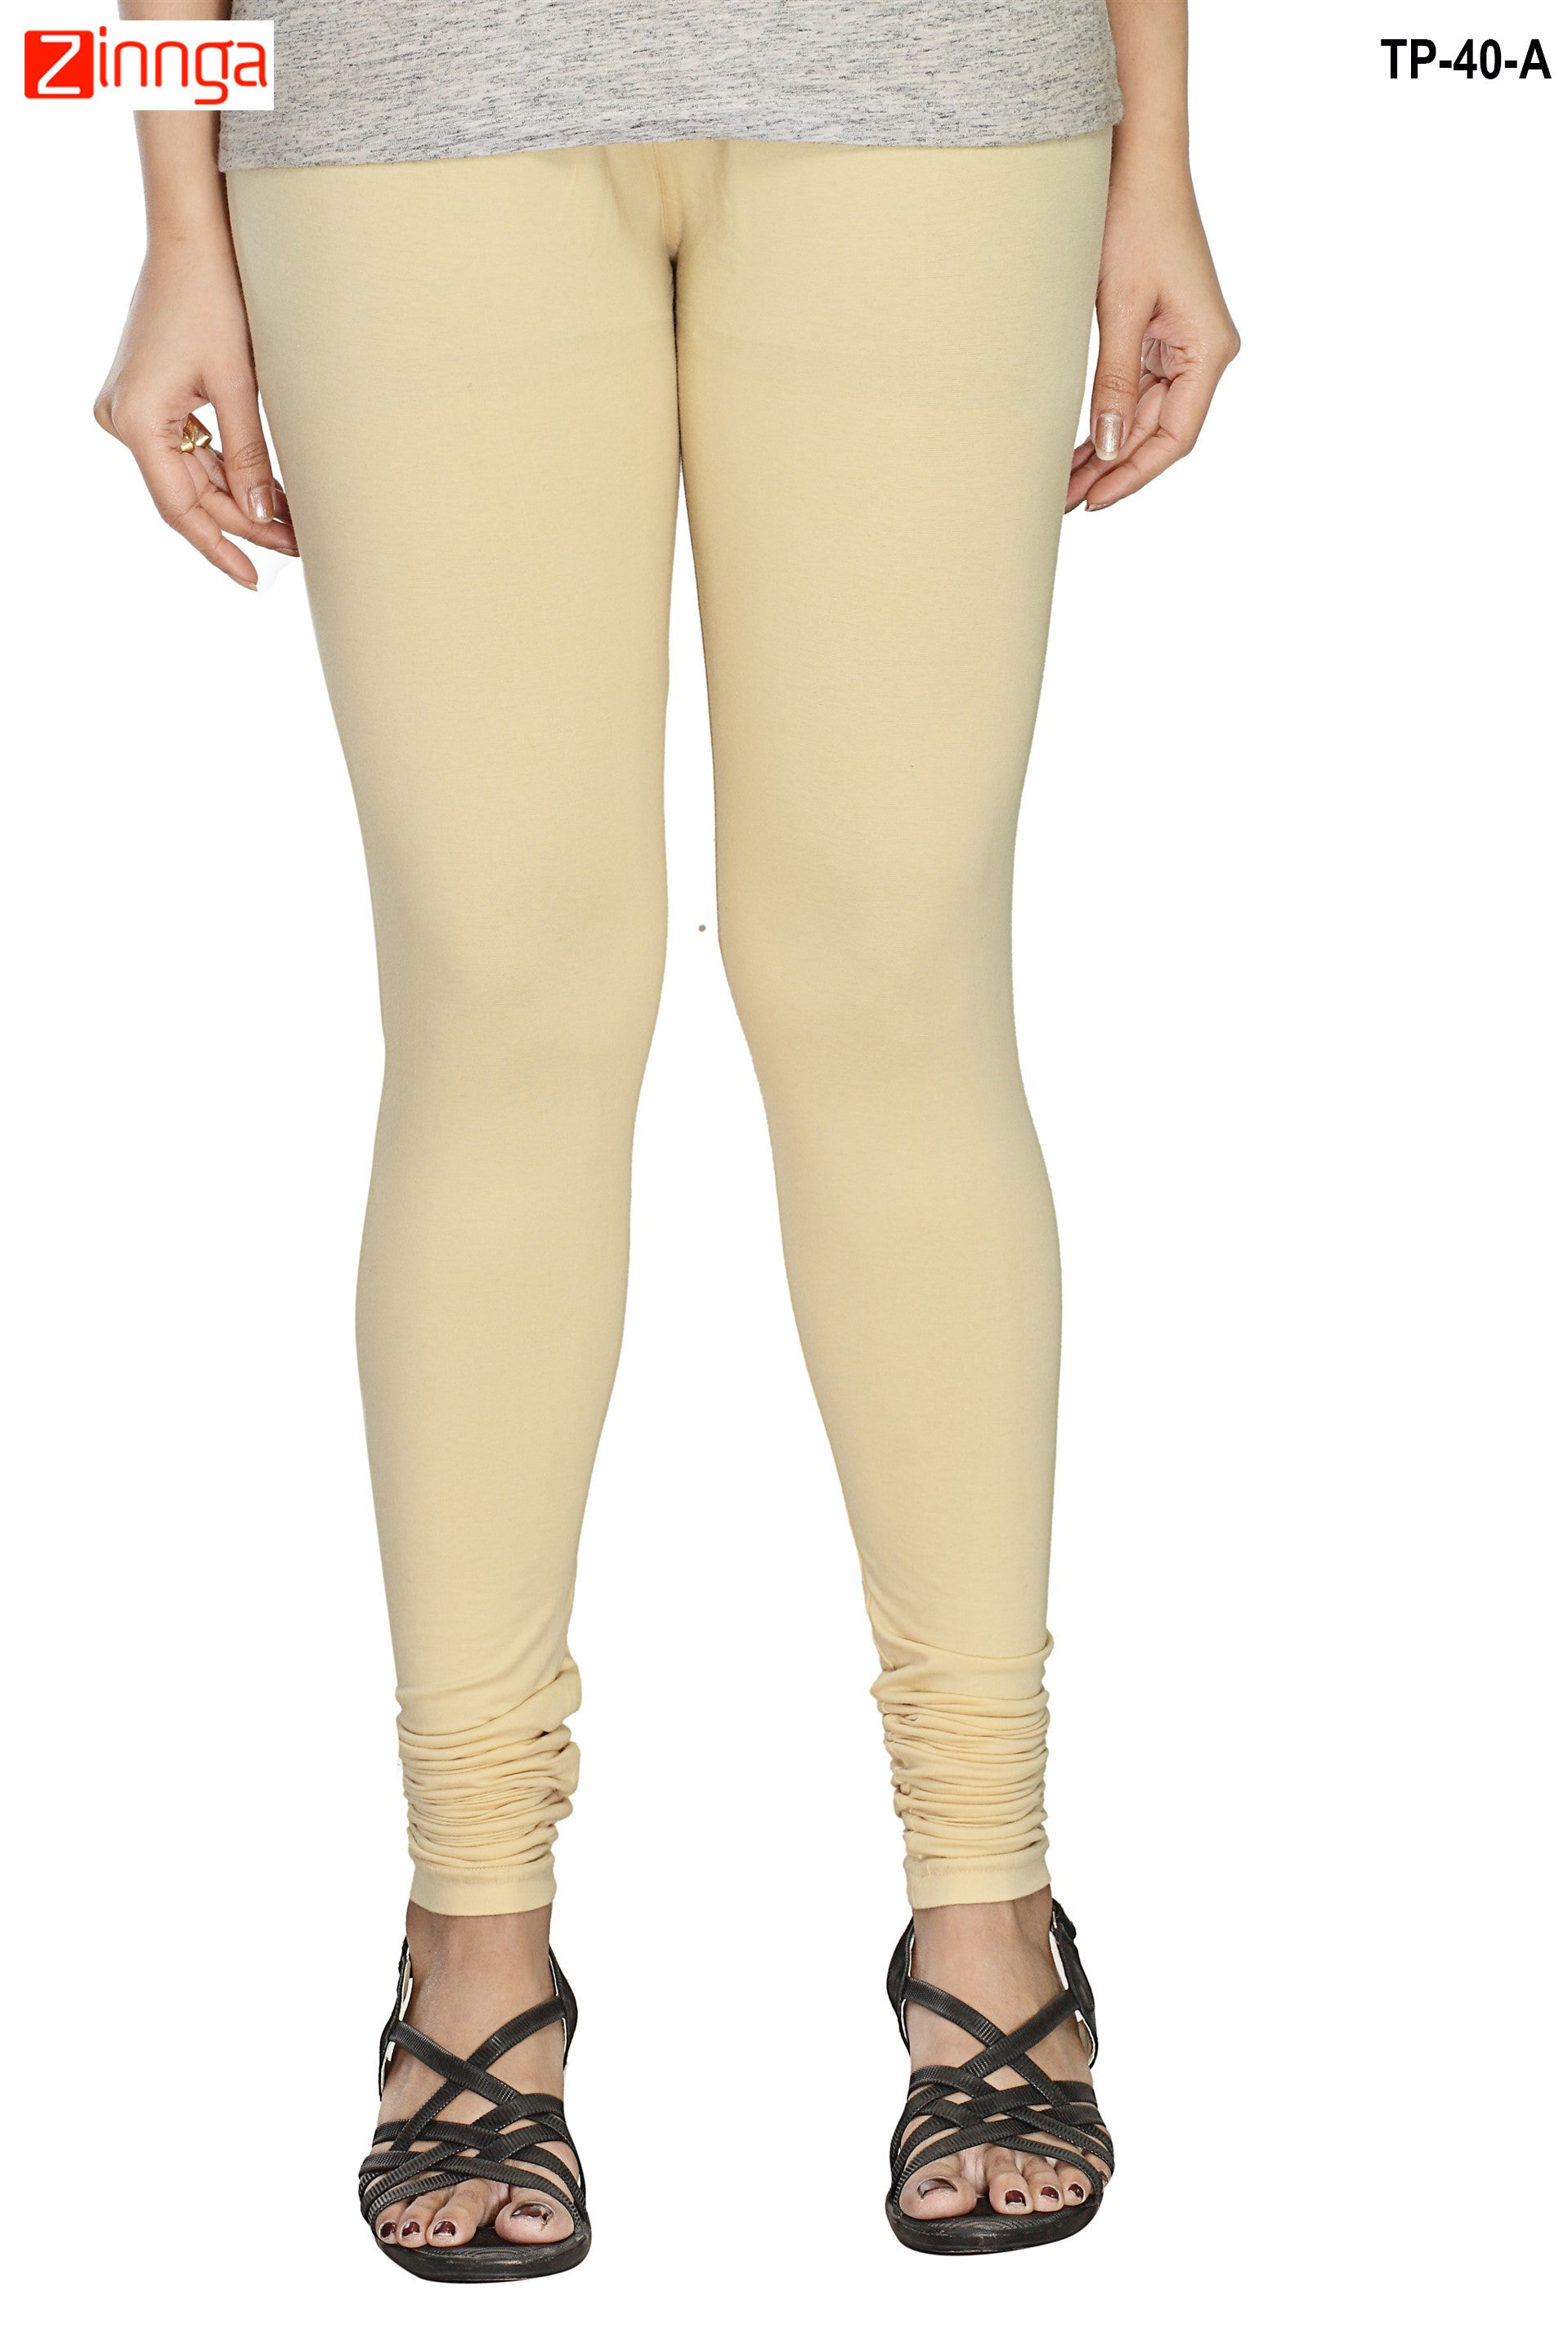 92ecb85f89ecf Off White Color Cotton Legging | Zinnga